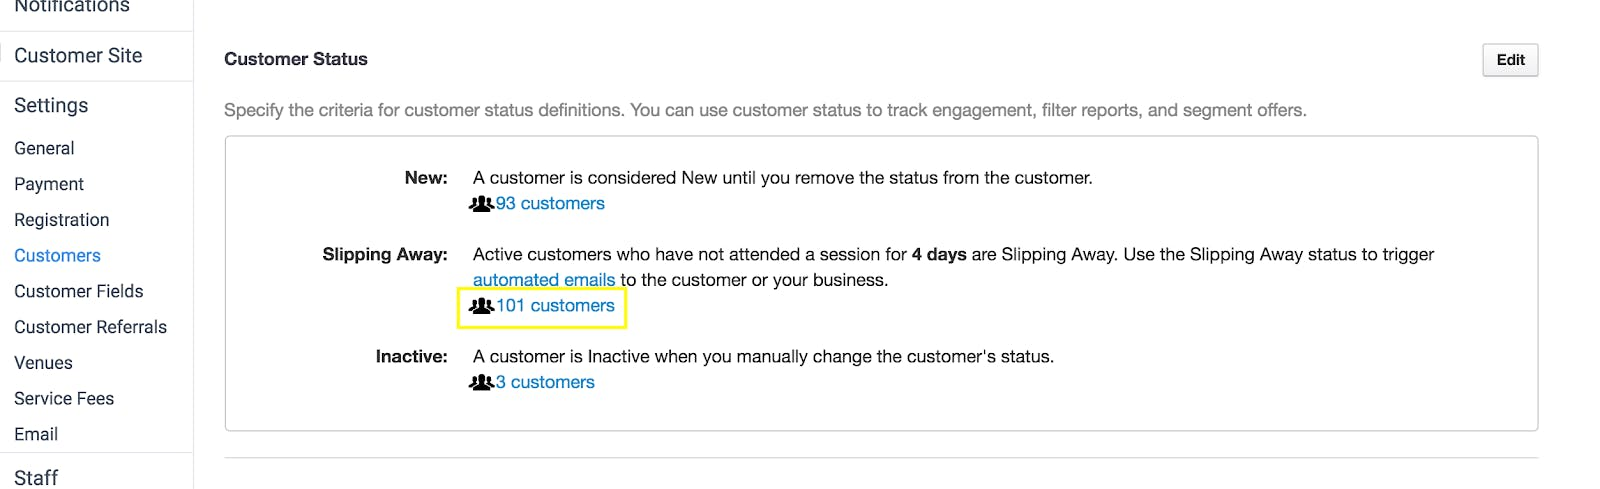 Image shows screenshot of statistics: New, Slipping Away, and Inactive members. Highlight is Slipping Away: 101 customers